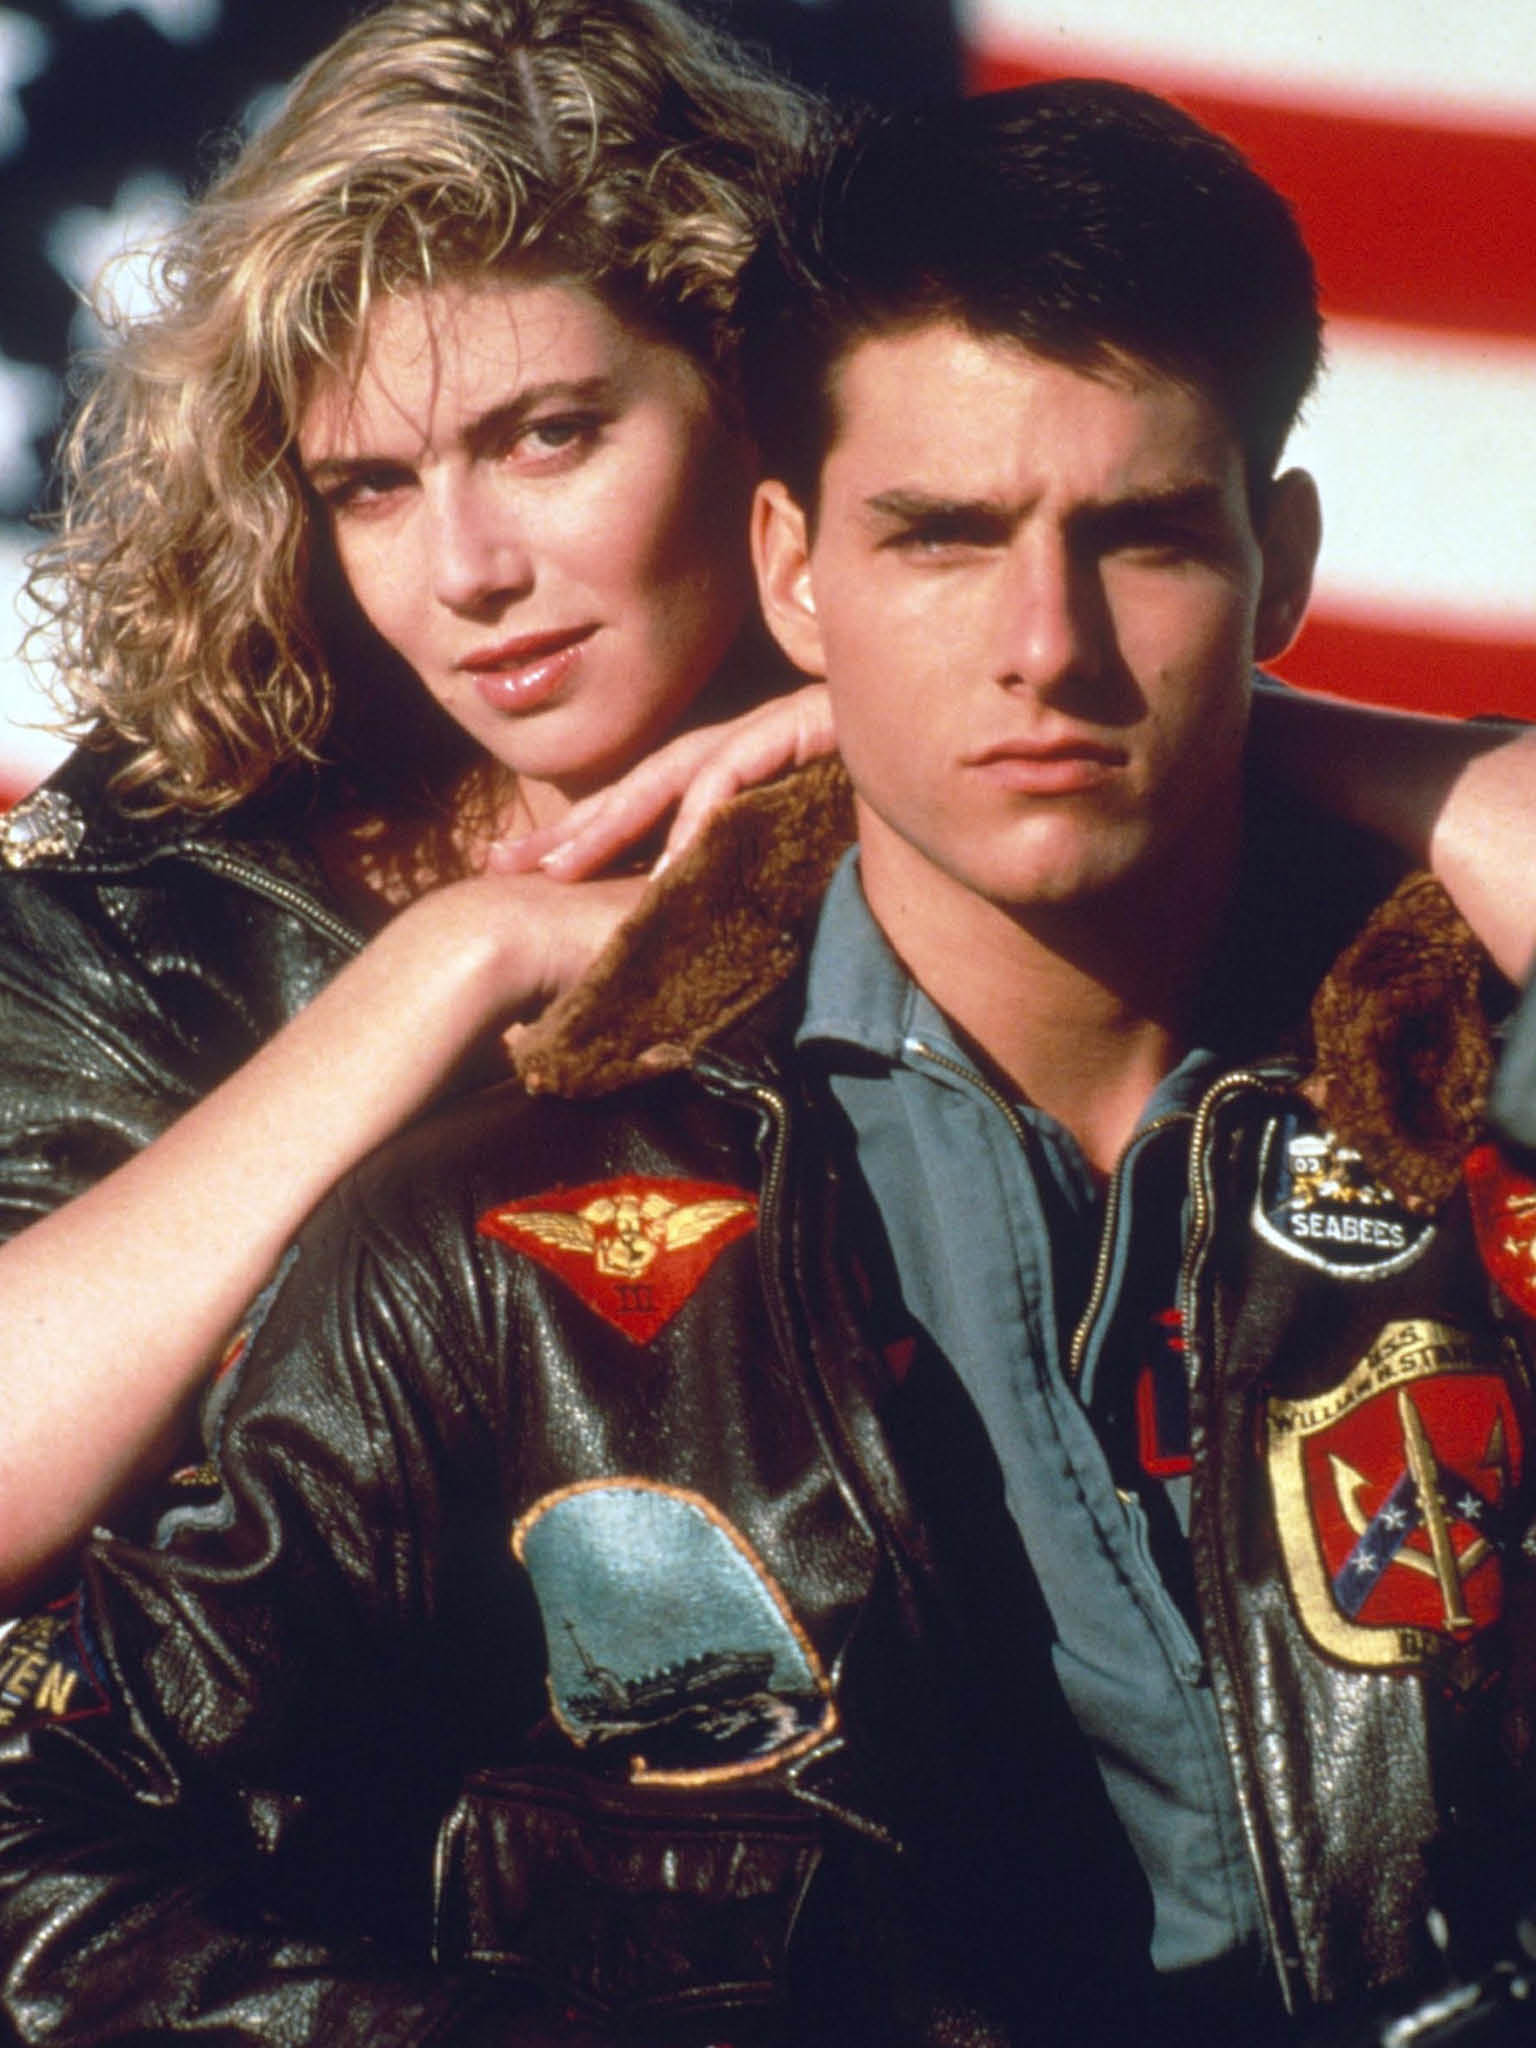 Mandatory Credit: Photo By Rex Features TOM CRUISE AND KELLY MCGILLIS IN  TOP GUN  FILM  TOP GUN  - 1986 (EDITORIAL USE ONLY) EDITORIAL USE ONLY